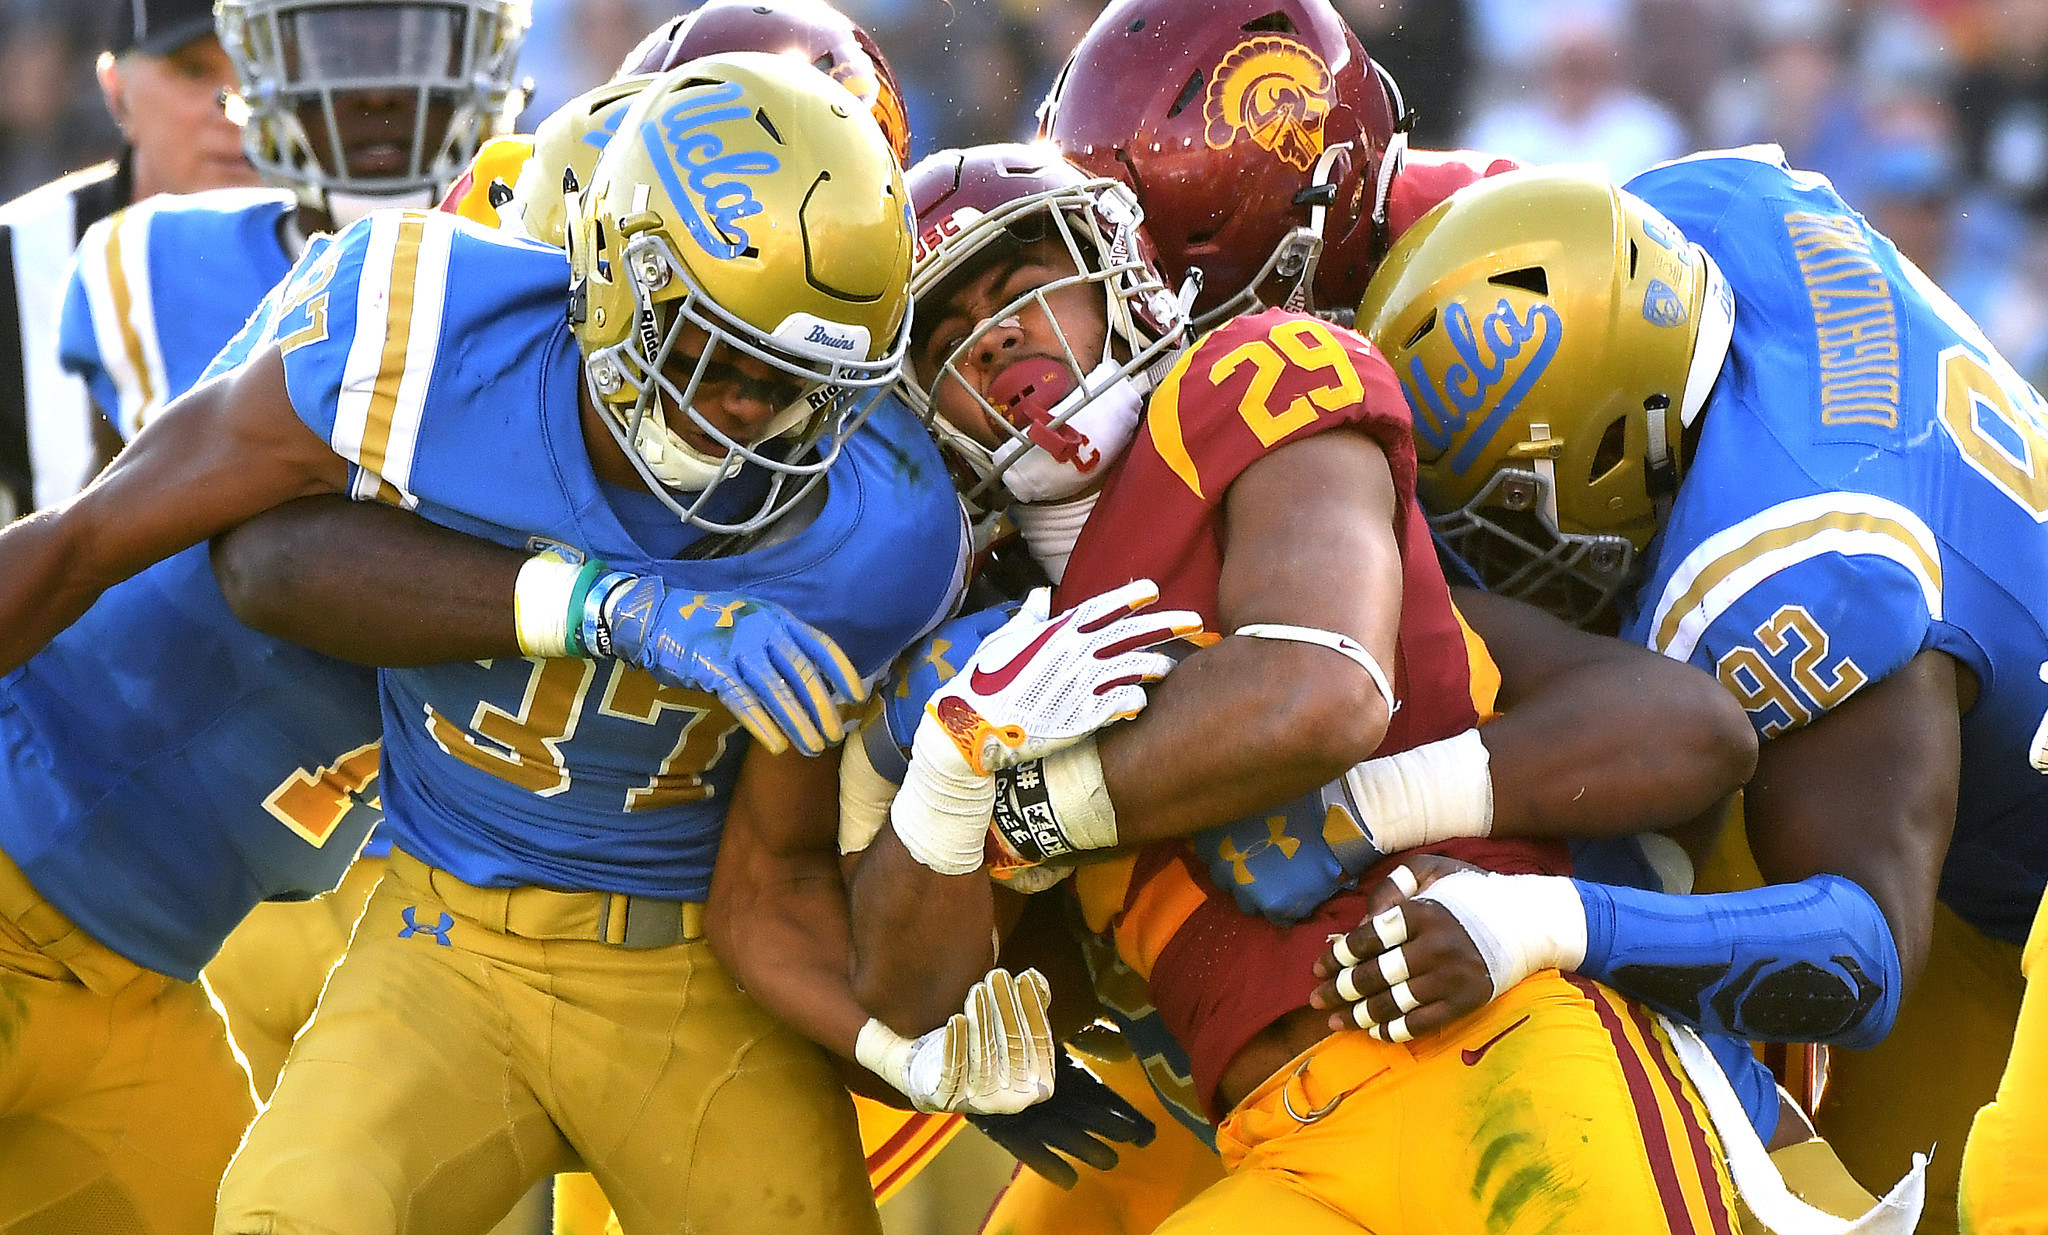 PASADENA, CALIFORNIA OCTOBER 17, 2018-USC running back Vavae Malepeai is stopped by Bruins Quentin L